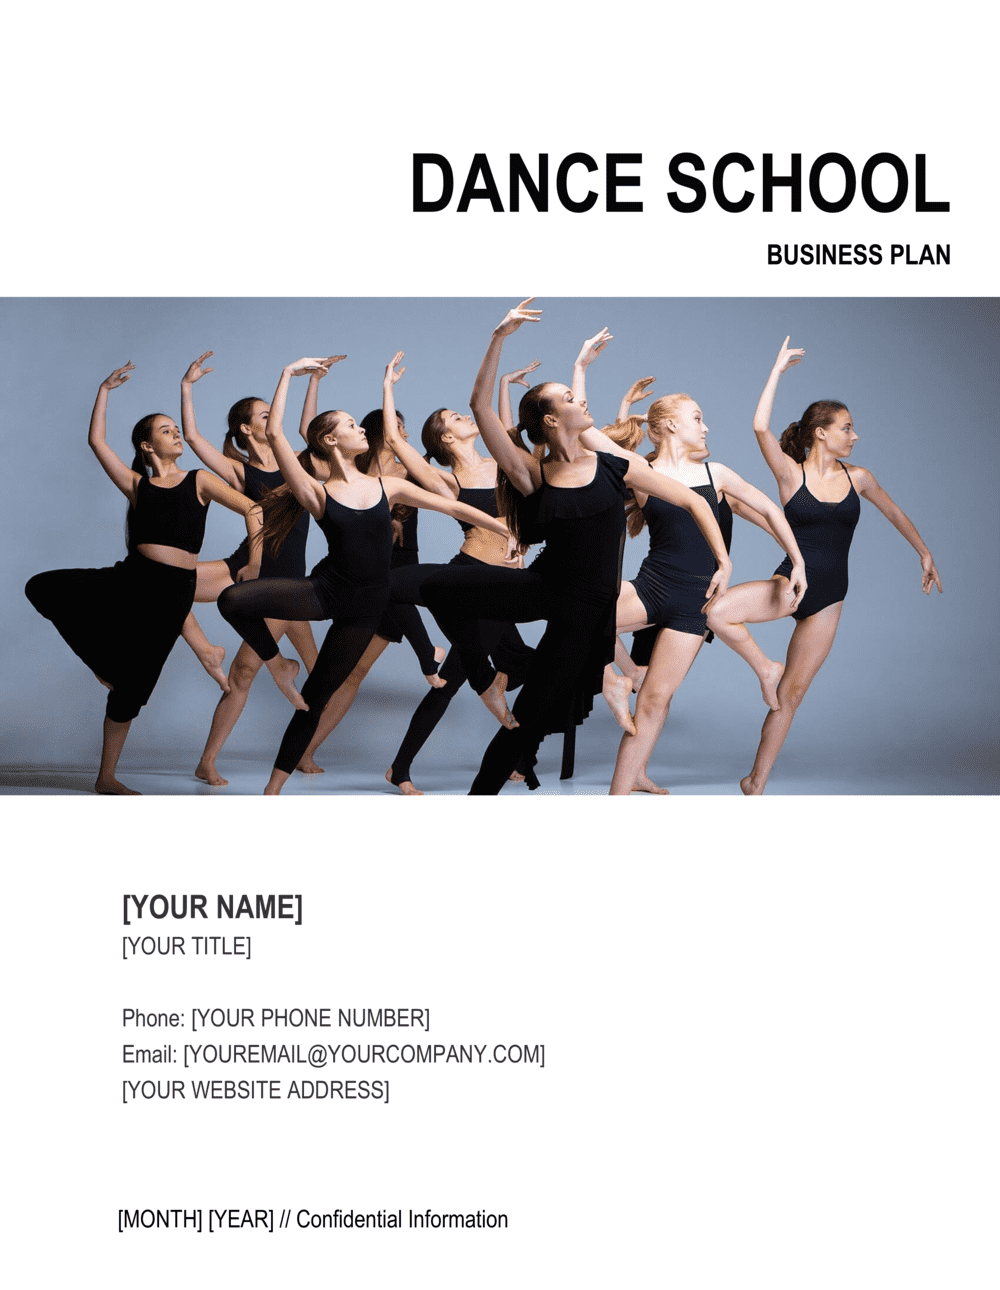 Business-in-a-Box's Dance School Business Plan Template